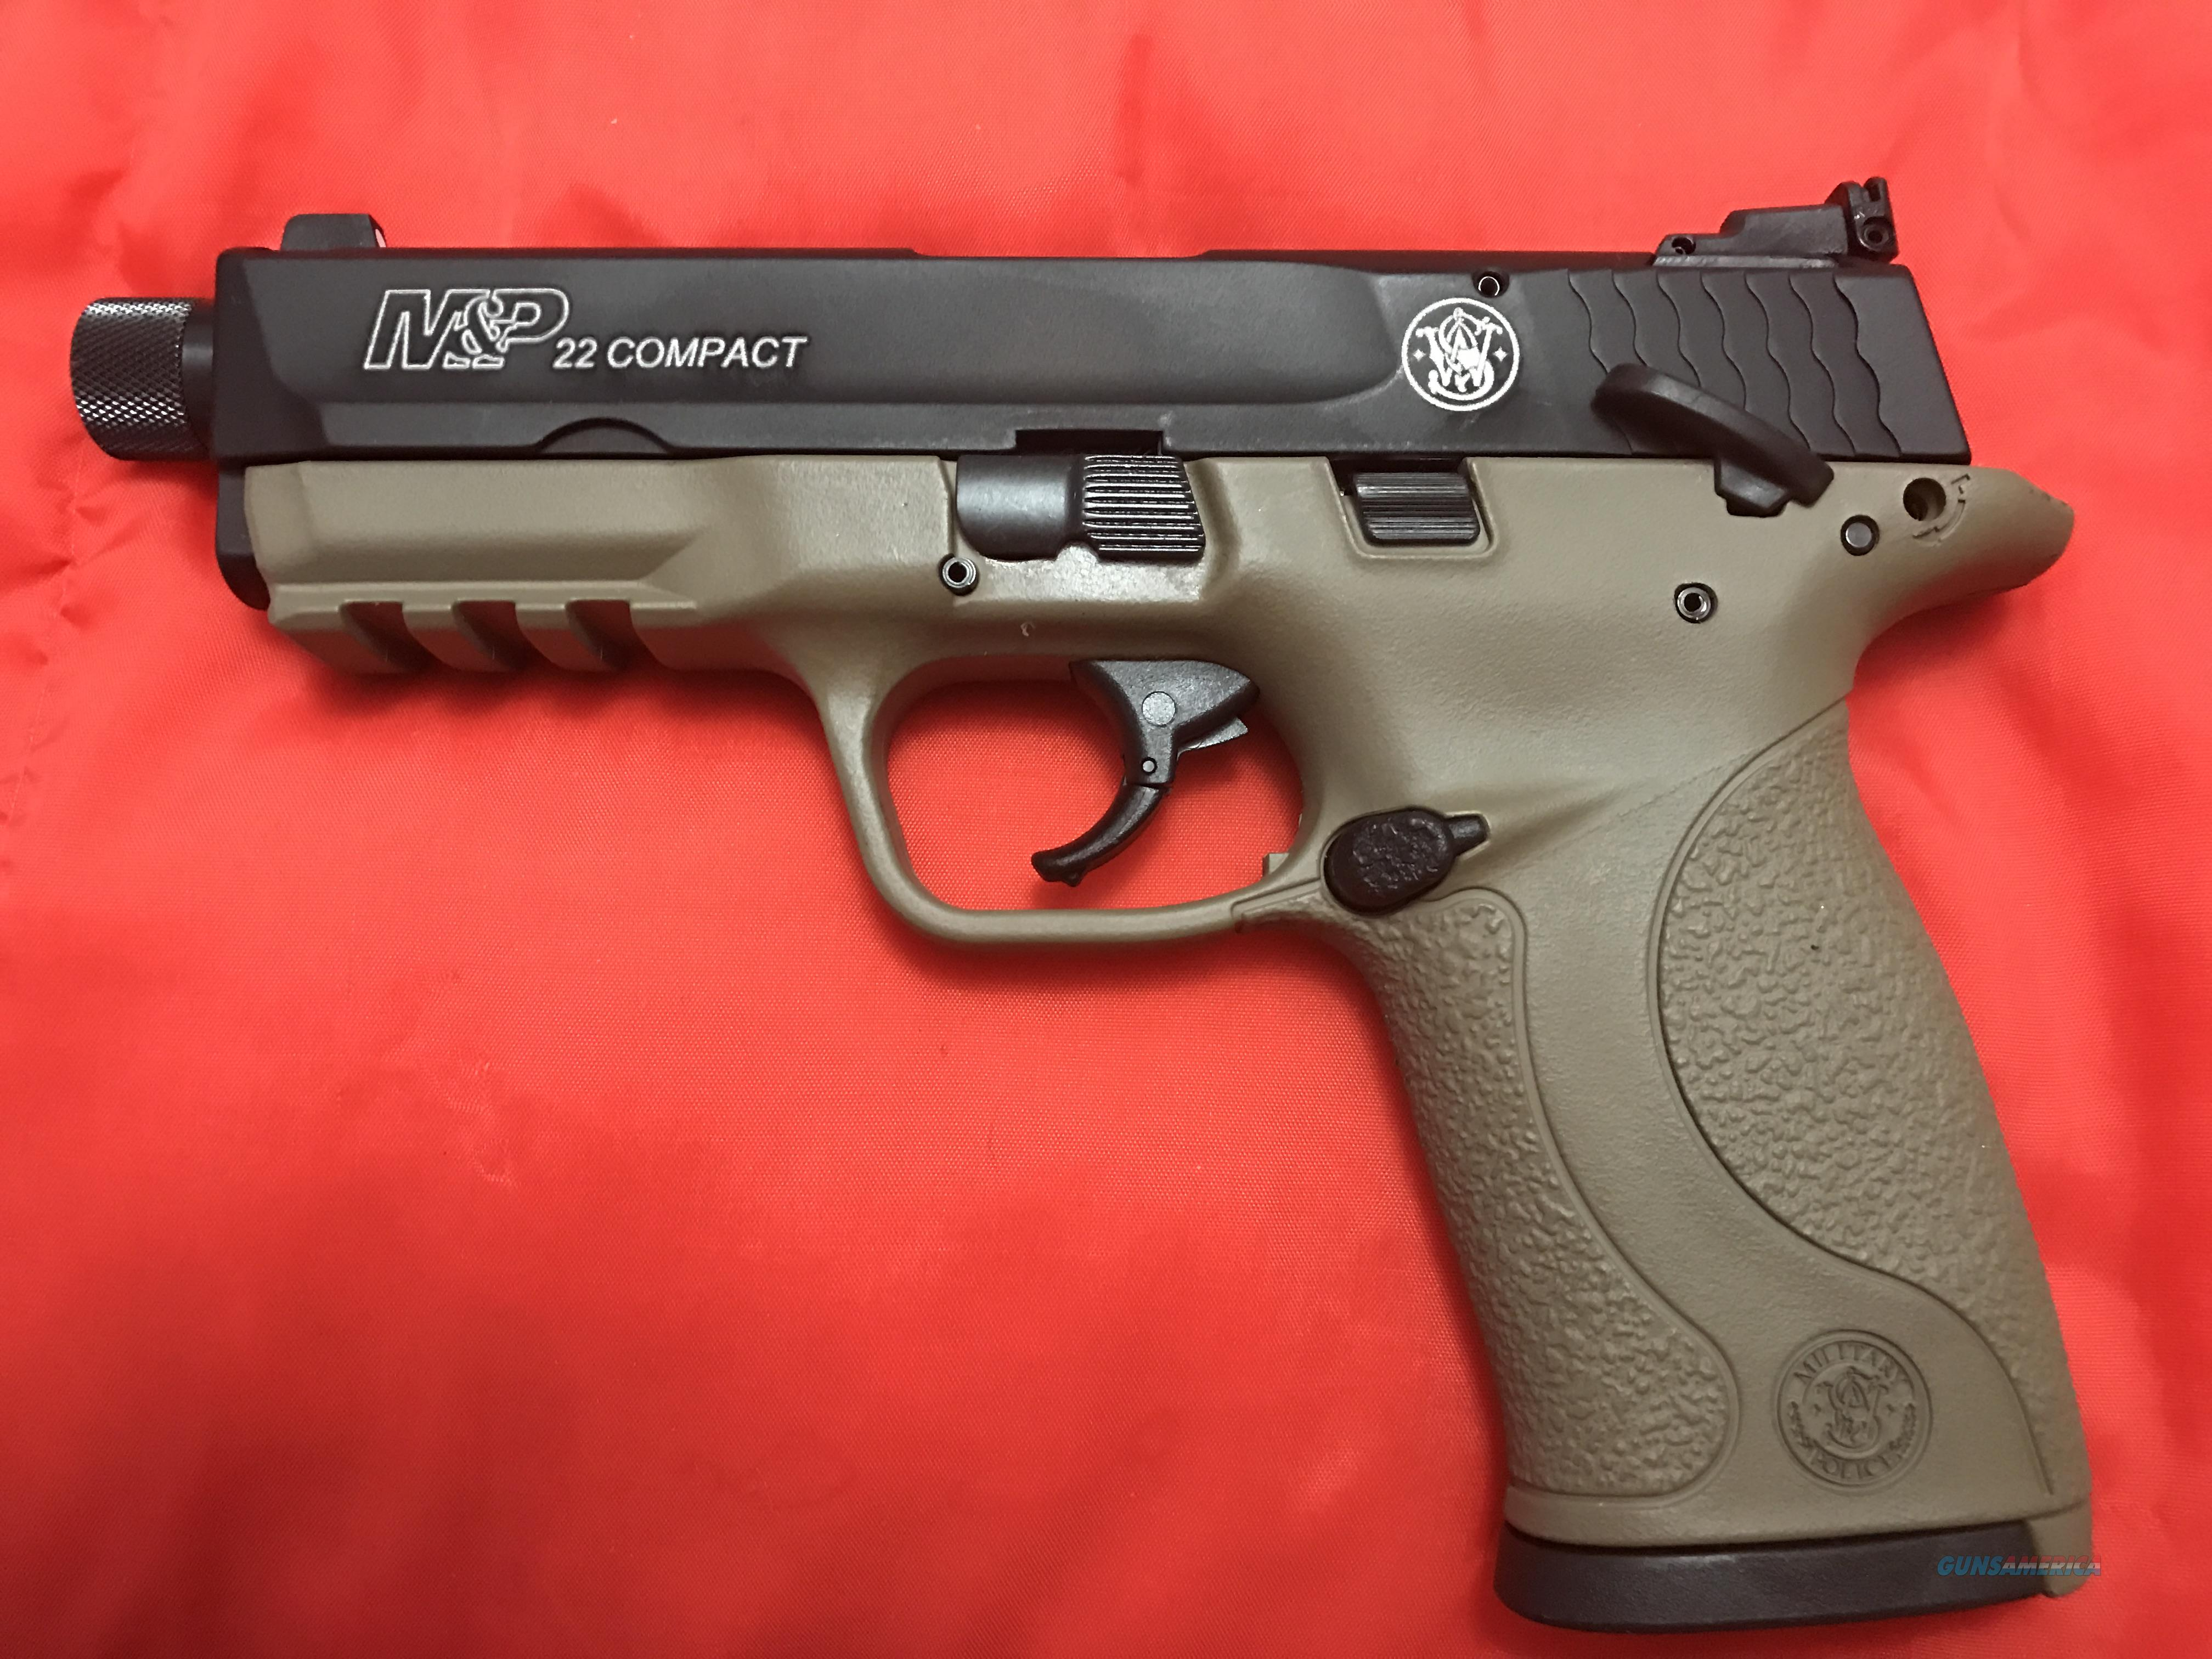 Smith and Wesson M&P 22 Compact, Suppressor Ready, 2 magazines, Black Slide and FDE freme  Guns > Pistols > Smith & Wesson Pistols - Autos > Polymer Frame